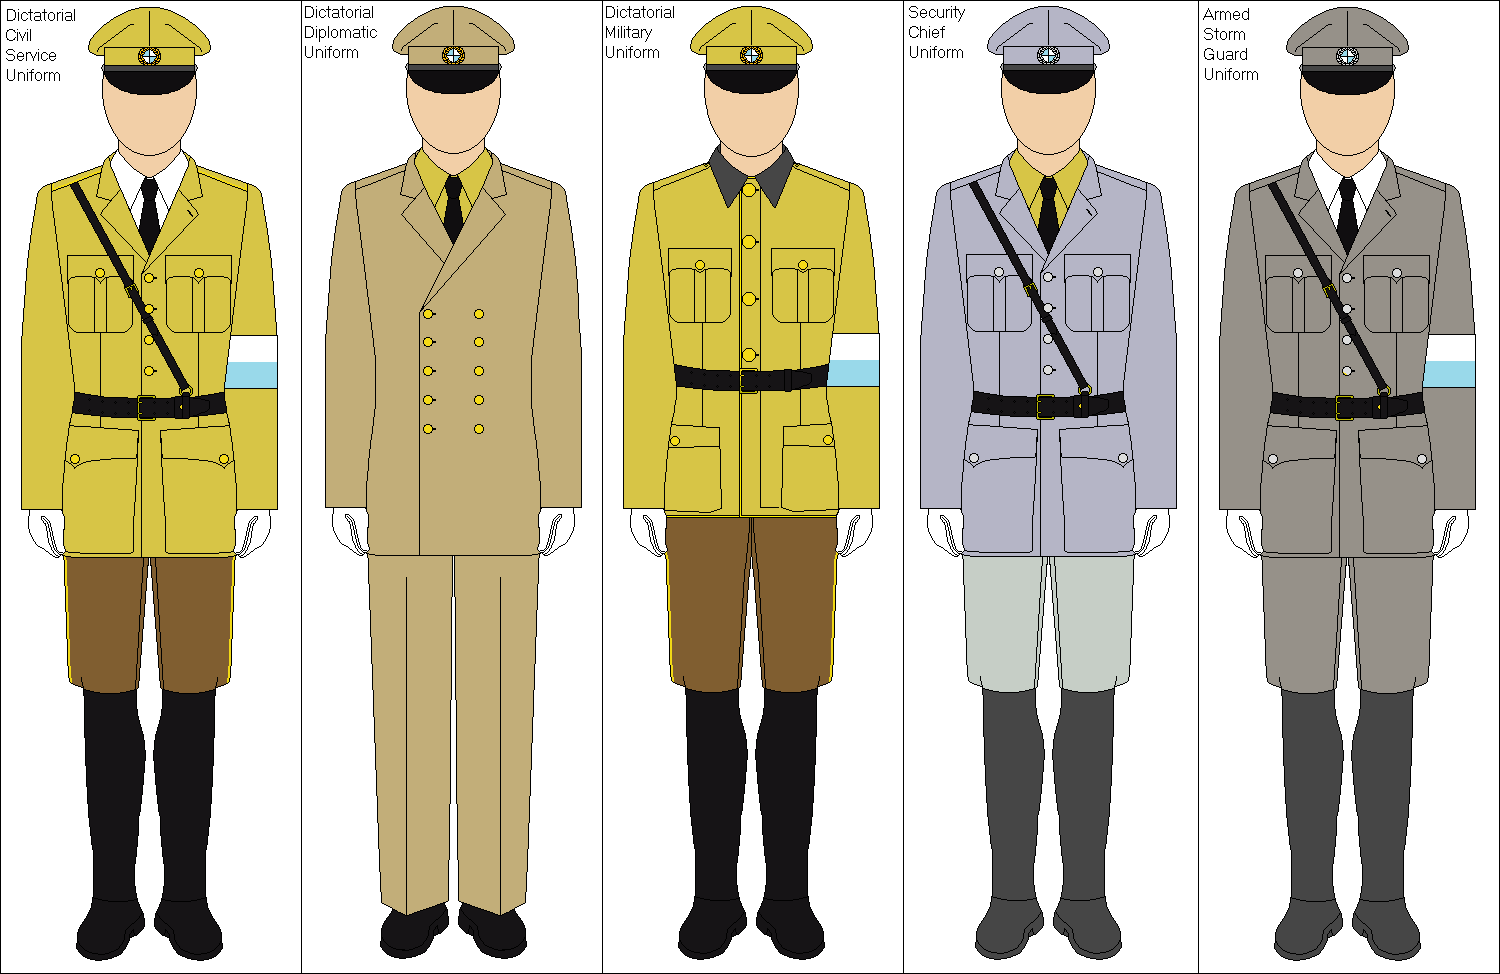 rank insignia and uniforms thread page 34 alternate history